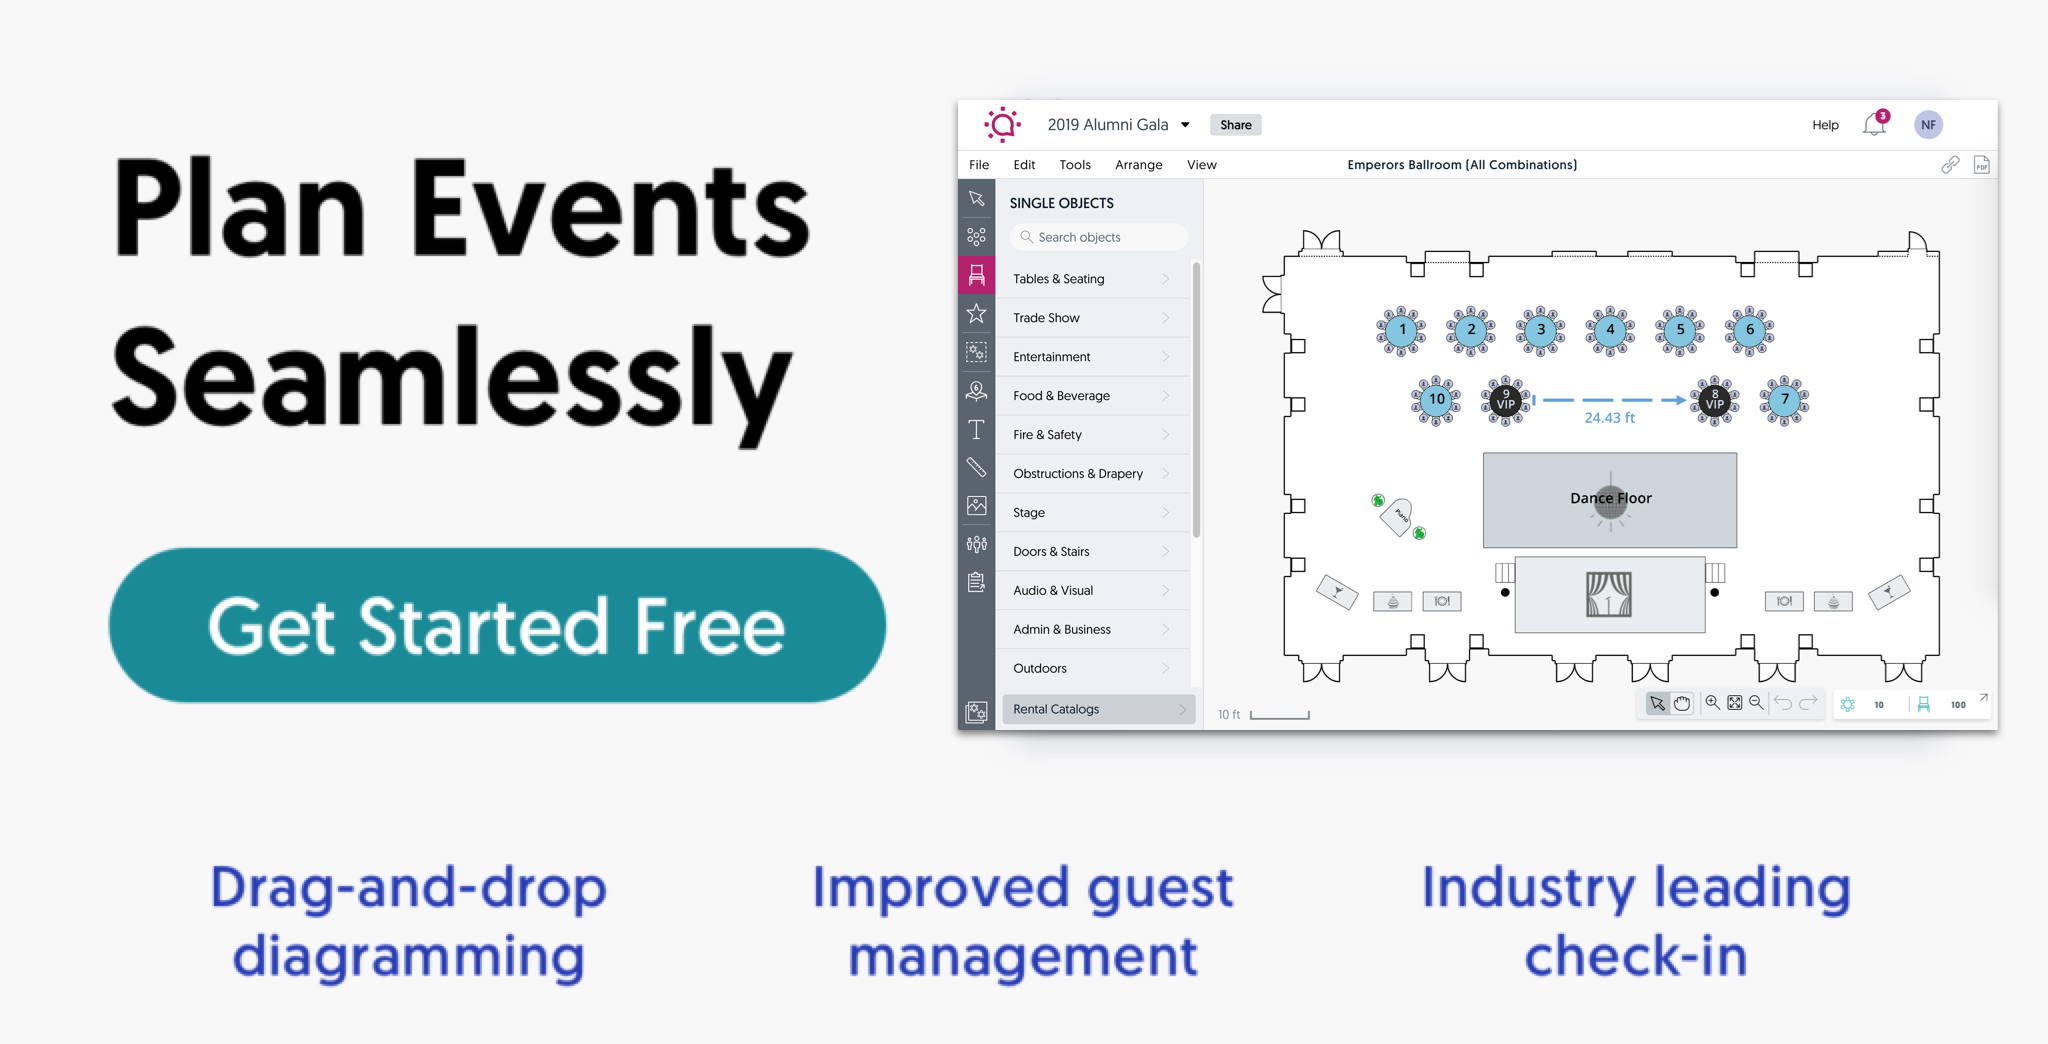 Plan Events Seamlessly